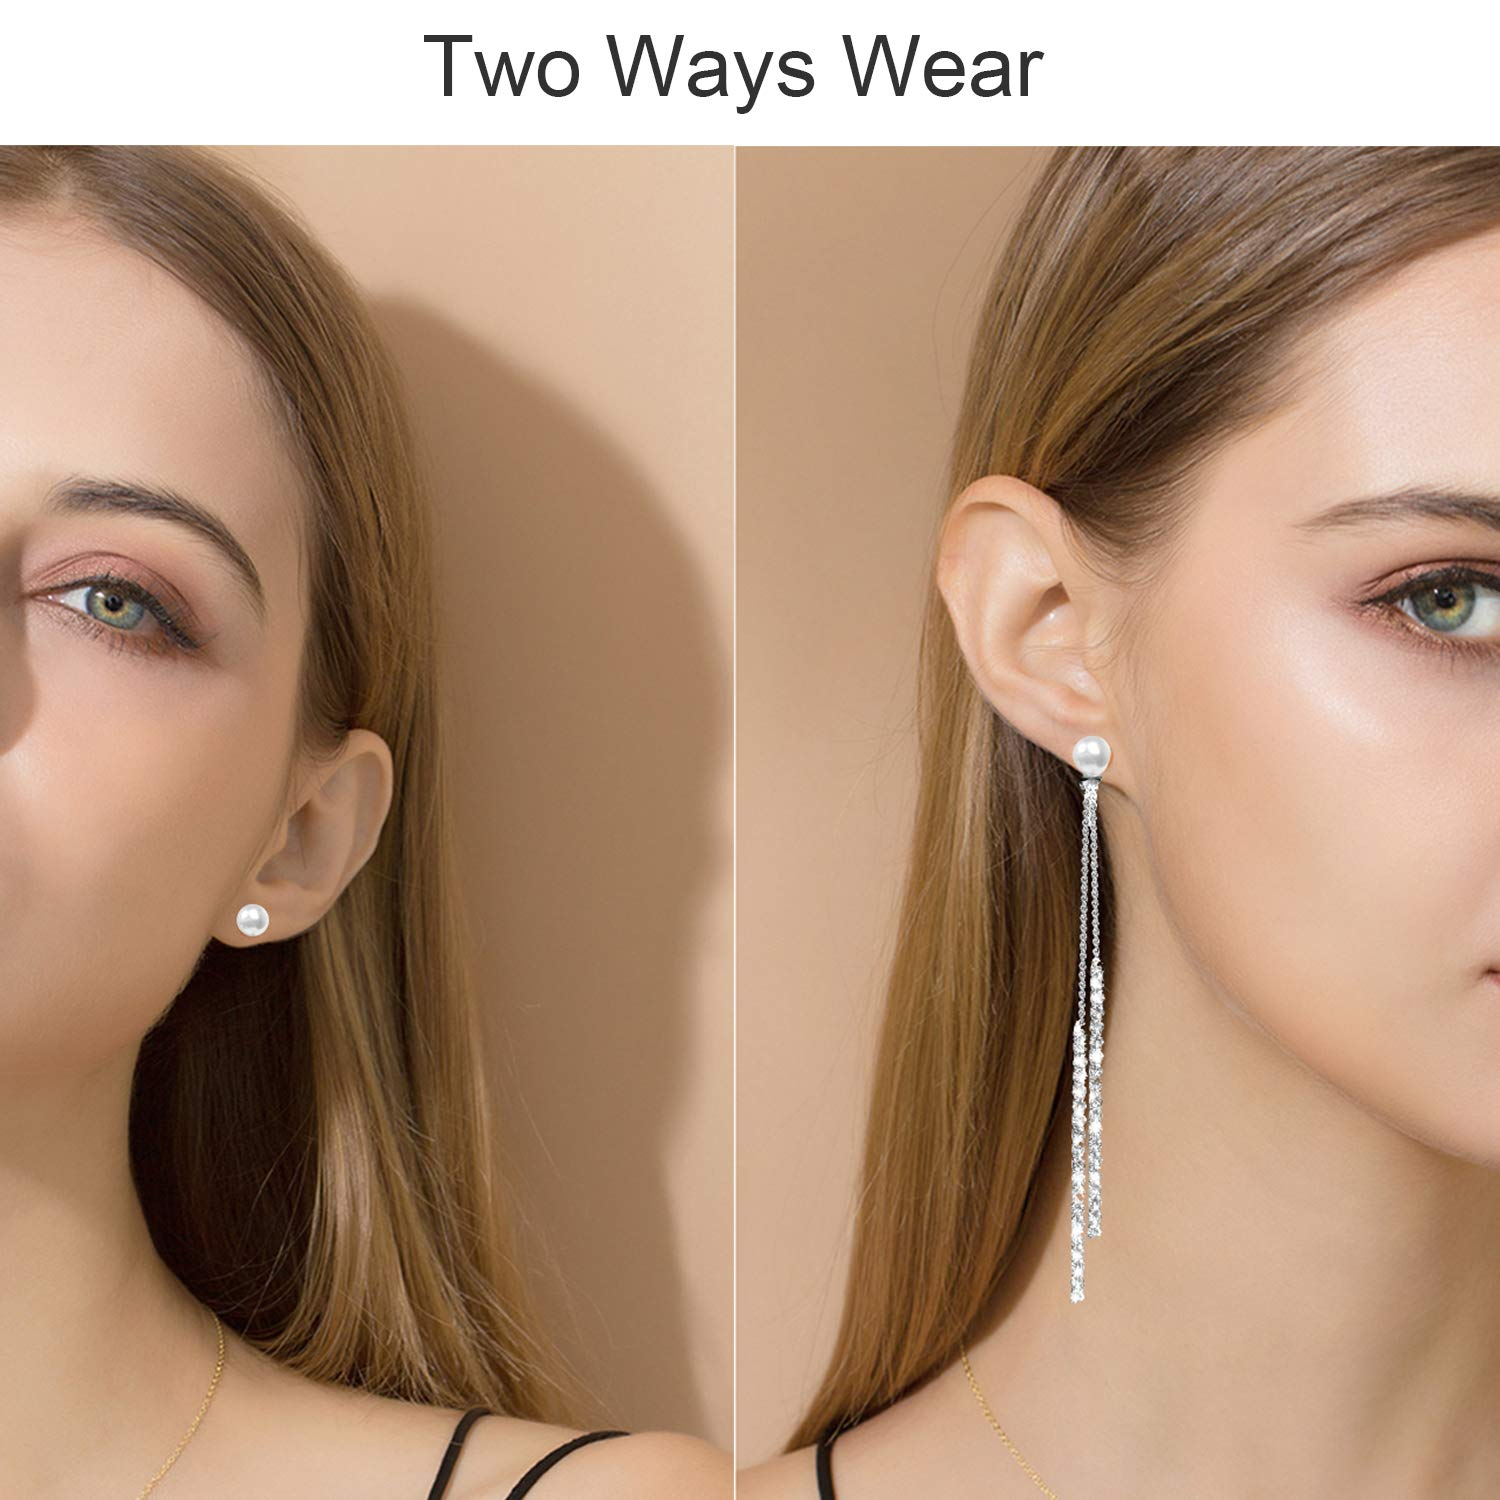 Fashion Long Tassel Crystal Pearl Two Ways Wear Cubic Zirconia Hypoallergenic /& Nickel Free Stud Drop Dangle Earrings Jewelry for Girls Women Chic Silver